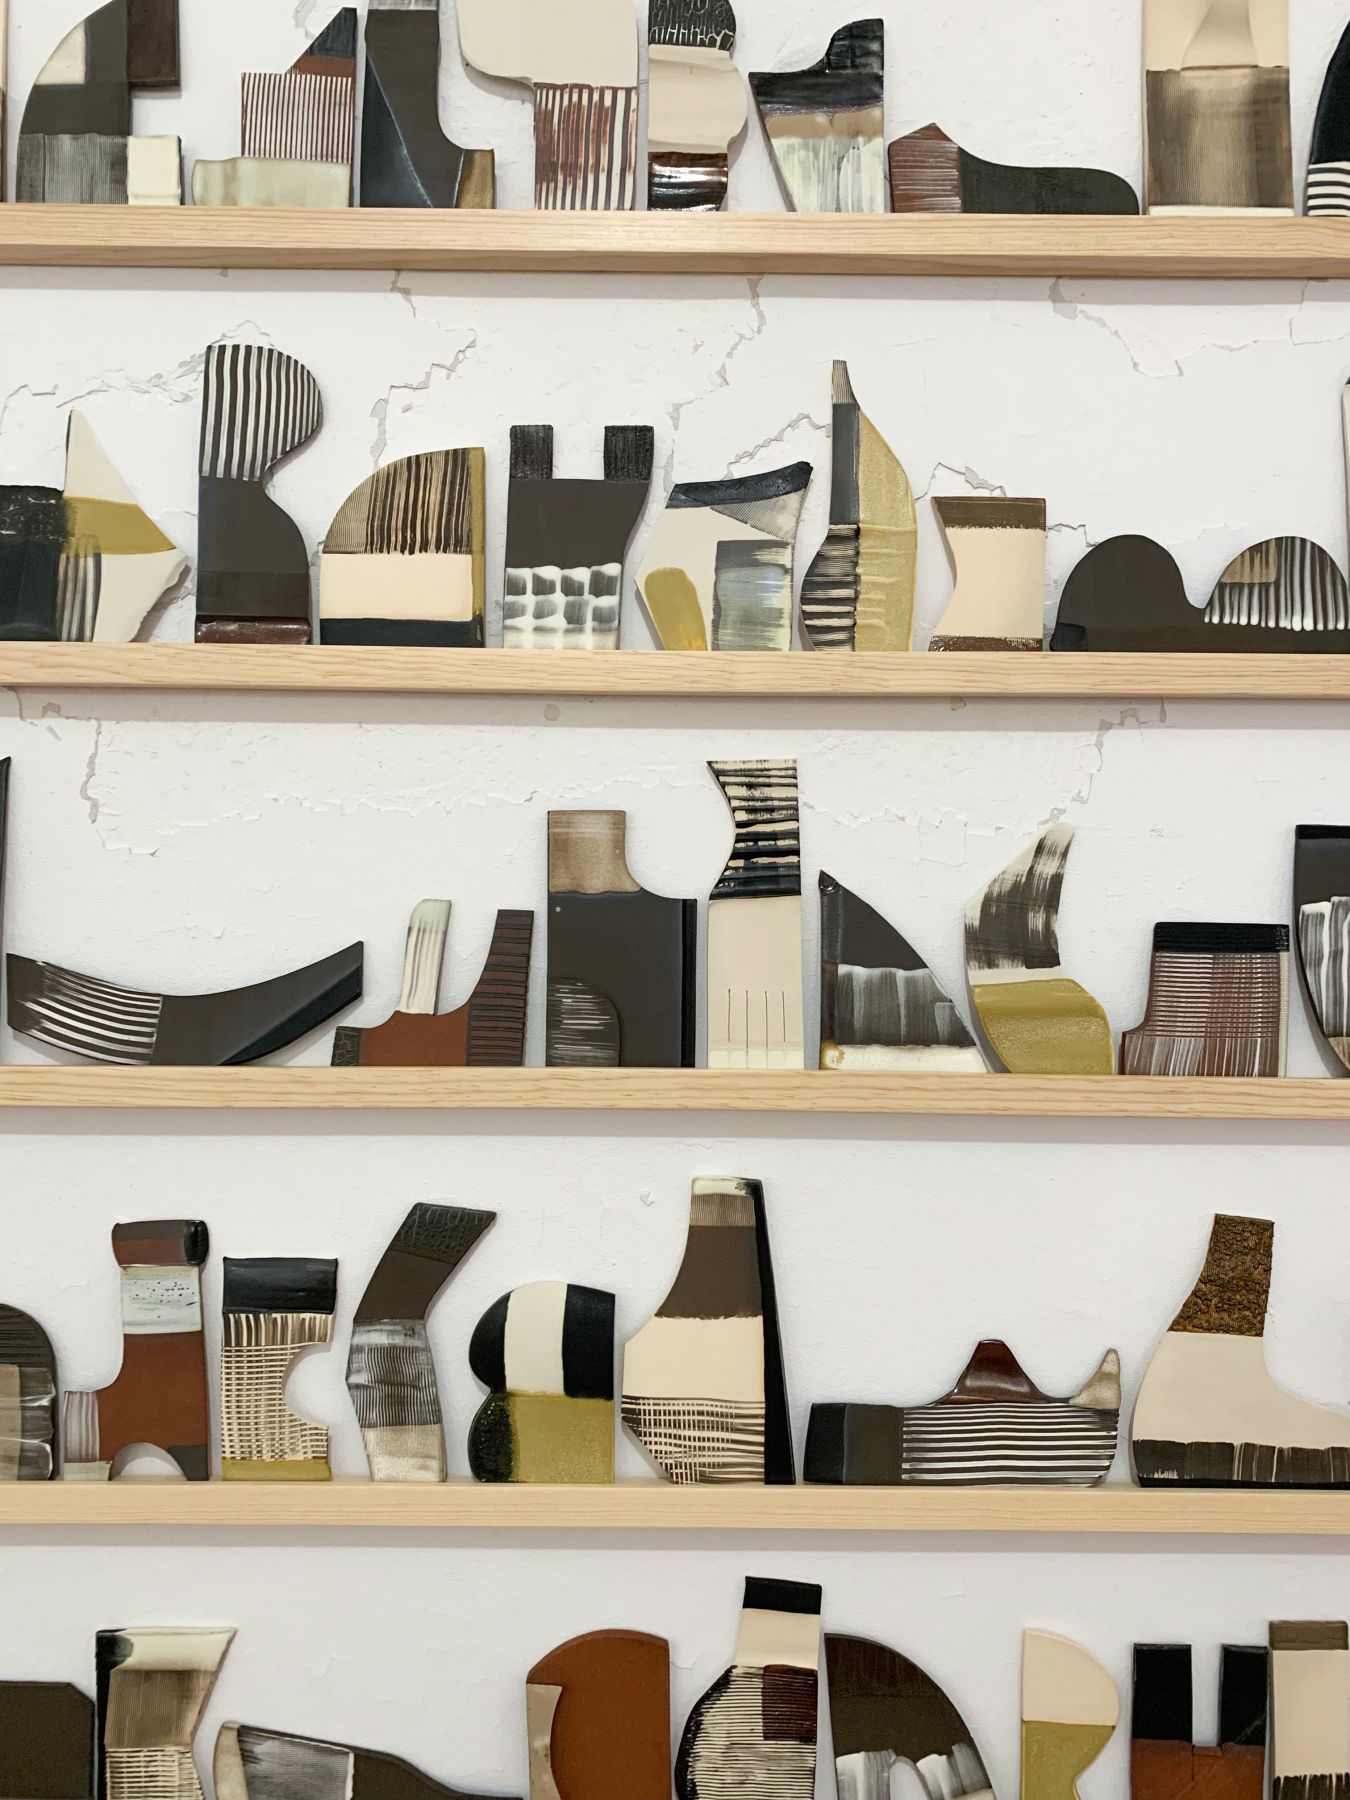 Detail -about 100 ceramic tiles made by katy fischer sit on 5 stacked thin wood shelves affixed to an old peeling wall.